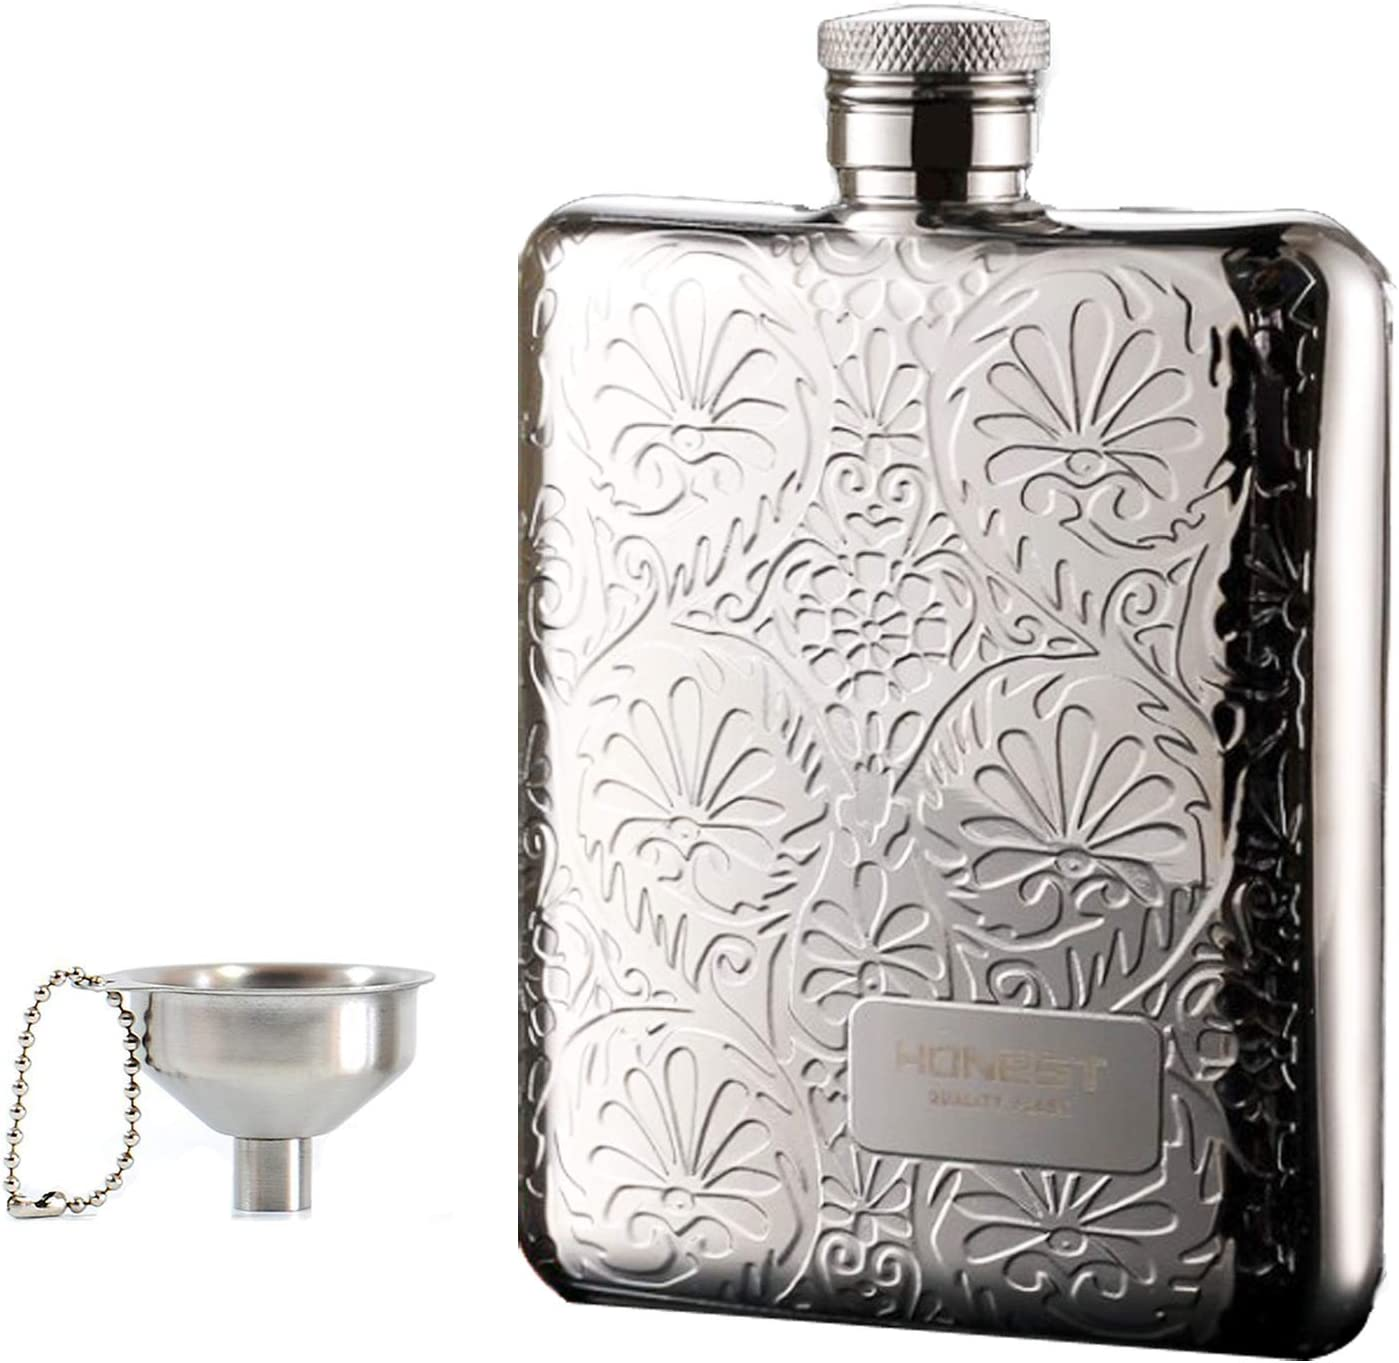 UonlyU Hip Flask with Funnel, 6 OZ Hip Flask with Gift Box,18/8 304 Food Grade Stainless Steel Made, Portable Hip Flask (Flower)